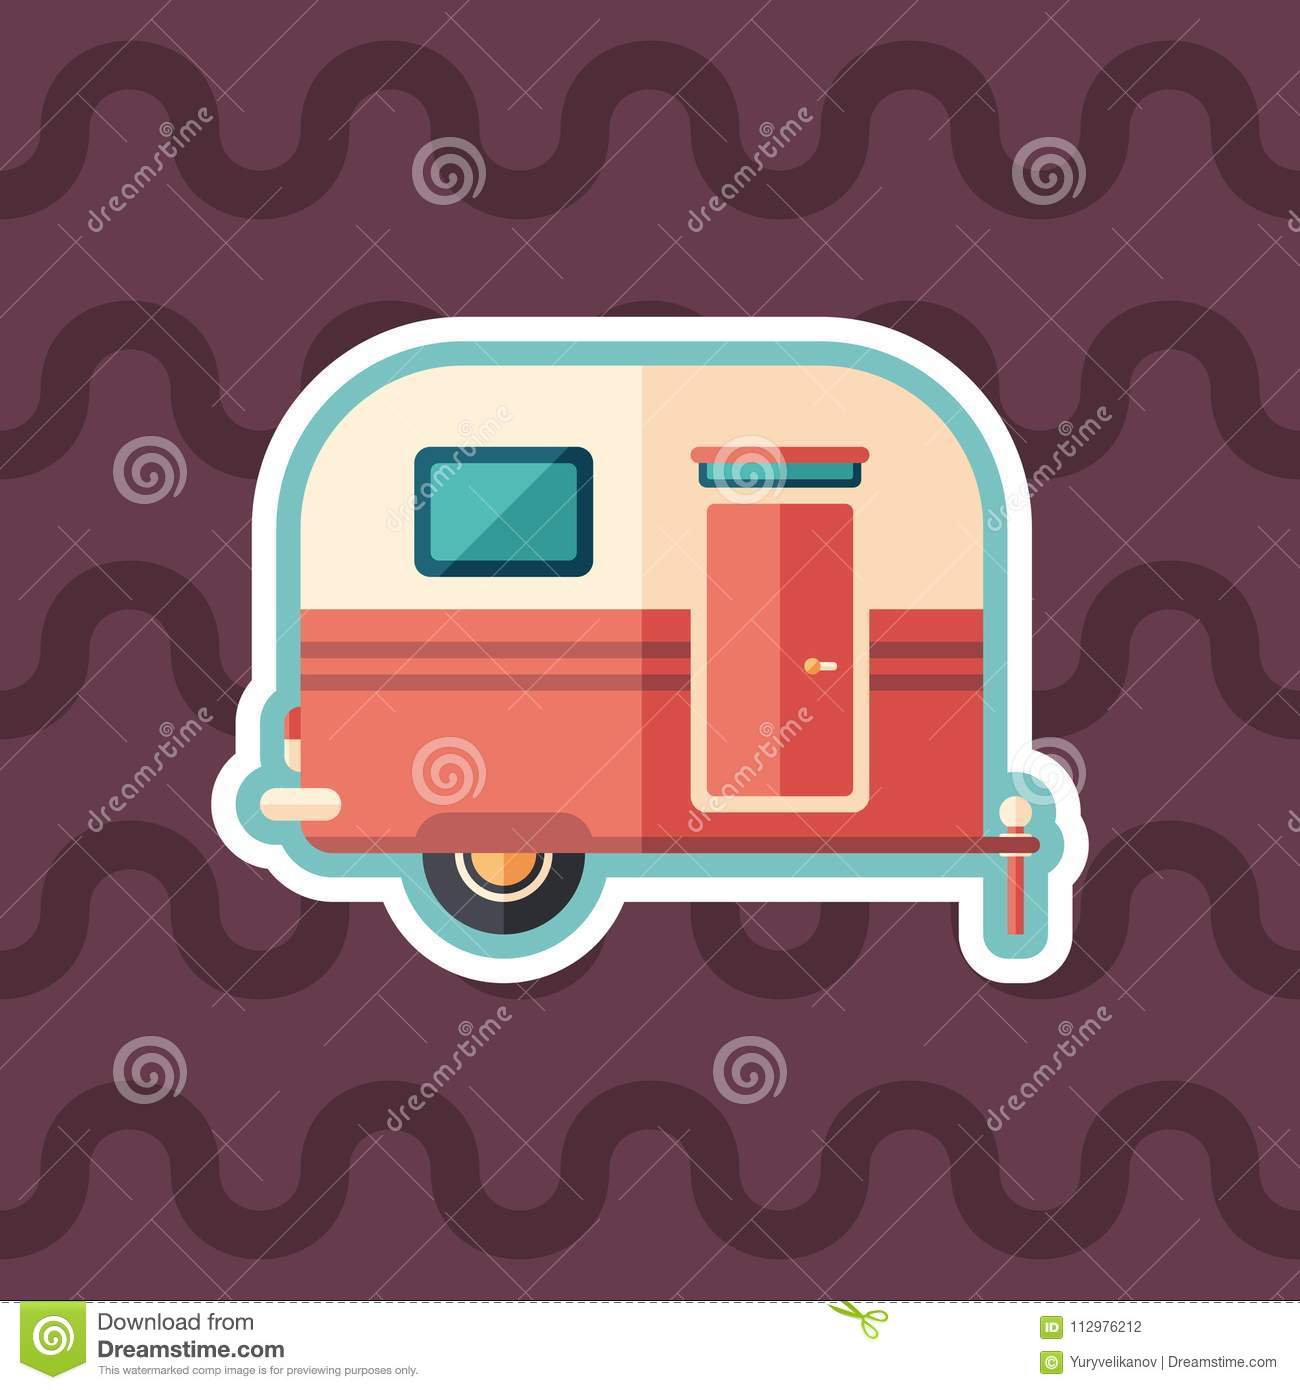 Travel trailer sticker flat icon with color background.